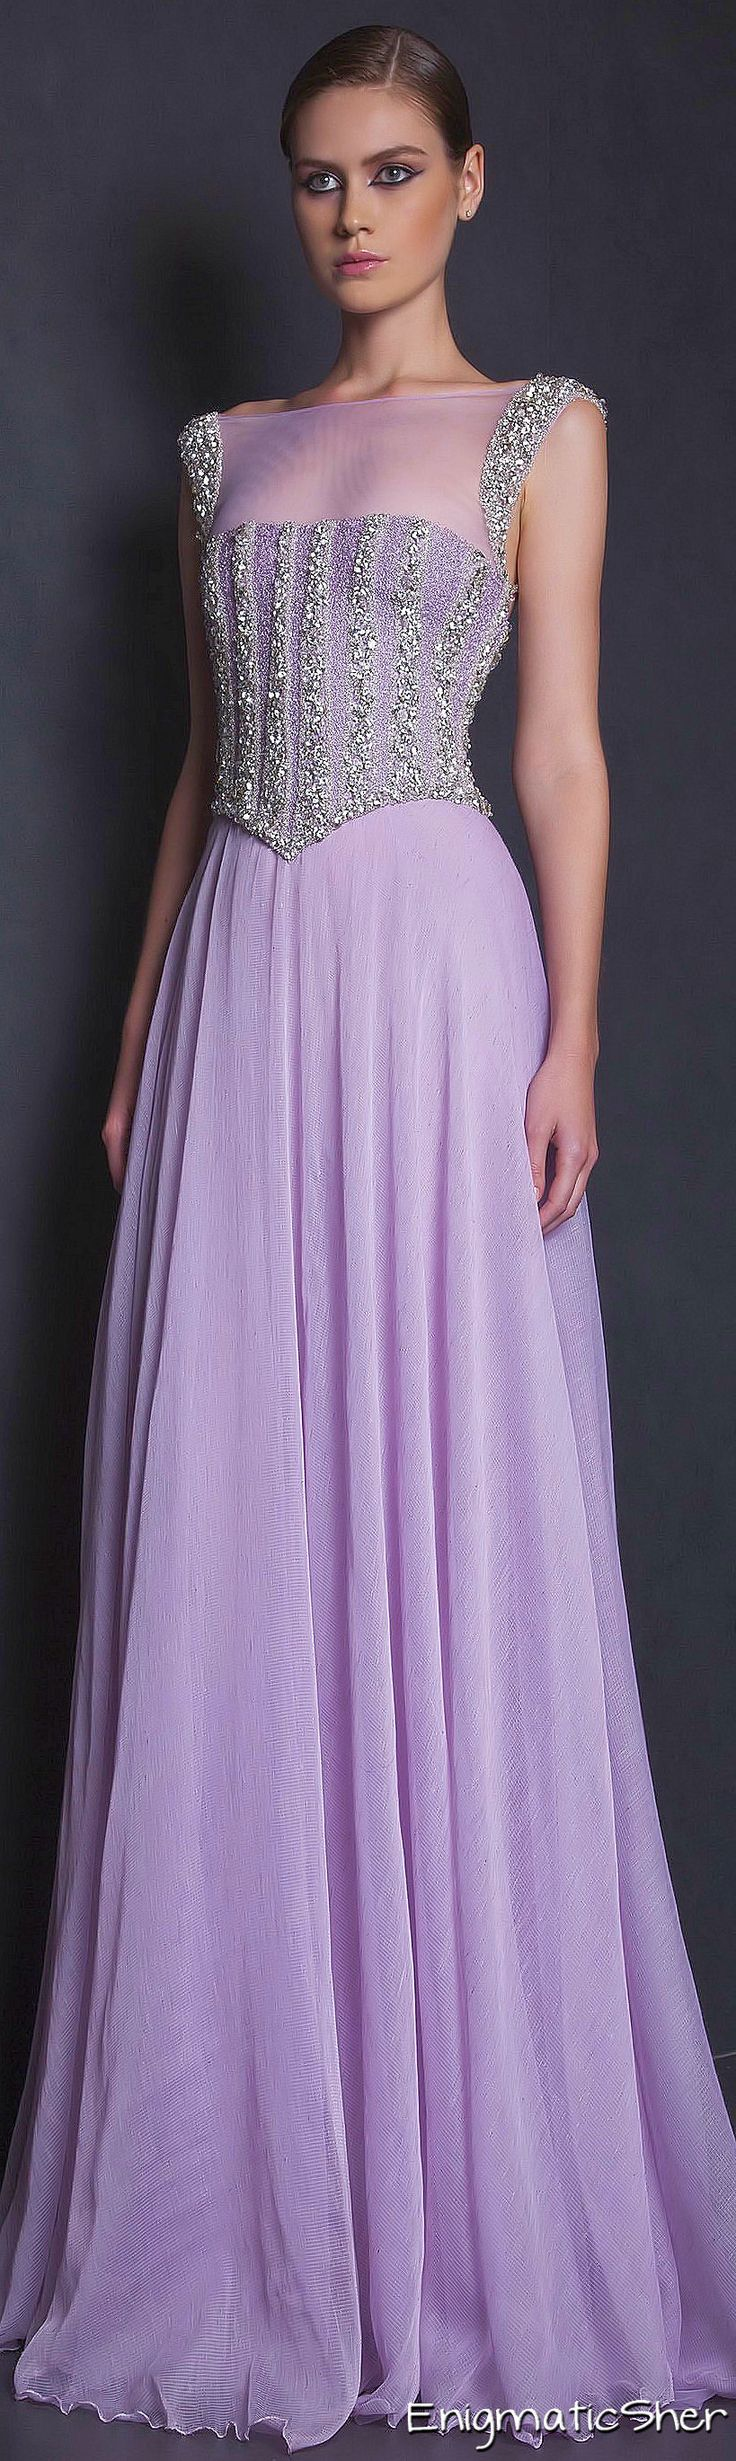 Glamour Gown..Tony Ward Spring-summer 2015 Ready-to-Wear